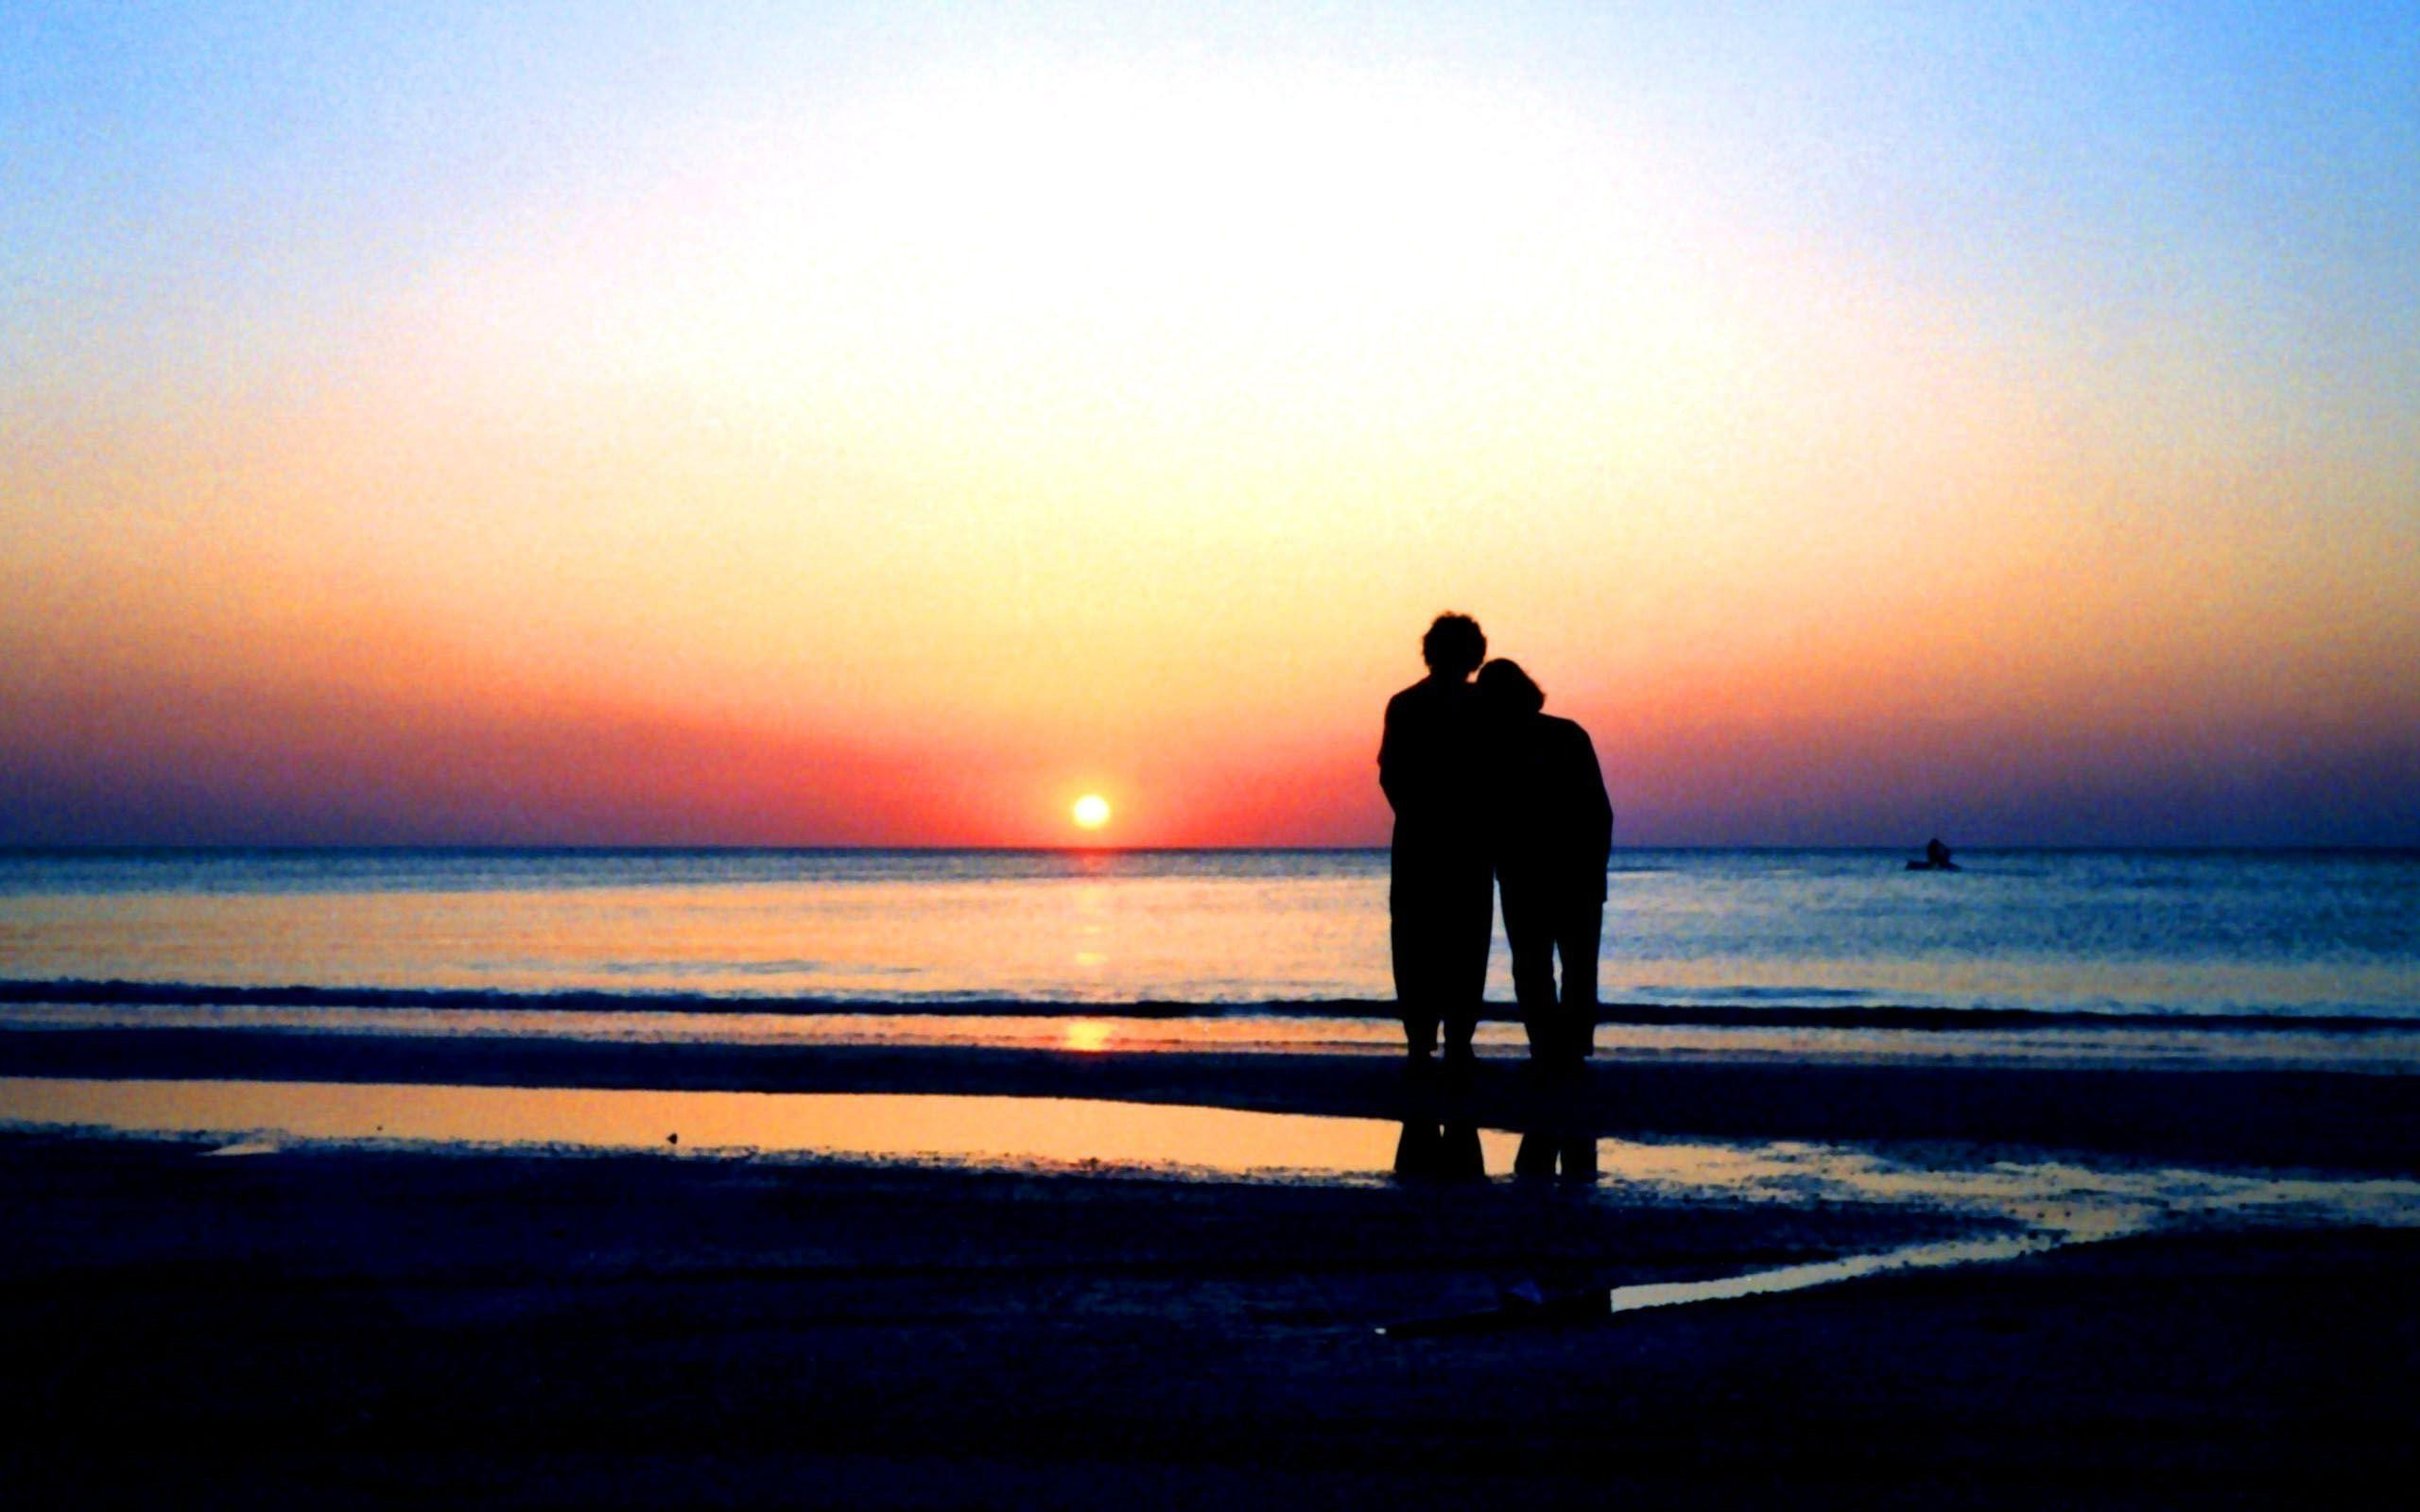 Love couple Guitar Wallpaper : Love beach sunset wallpaper 2560x1600 #28116